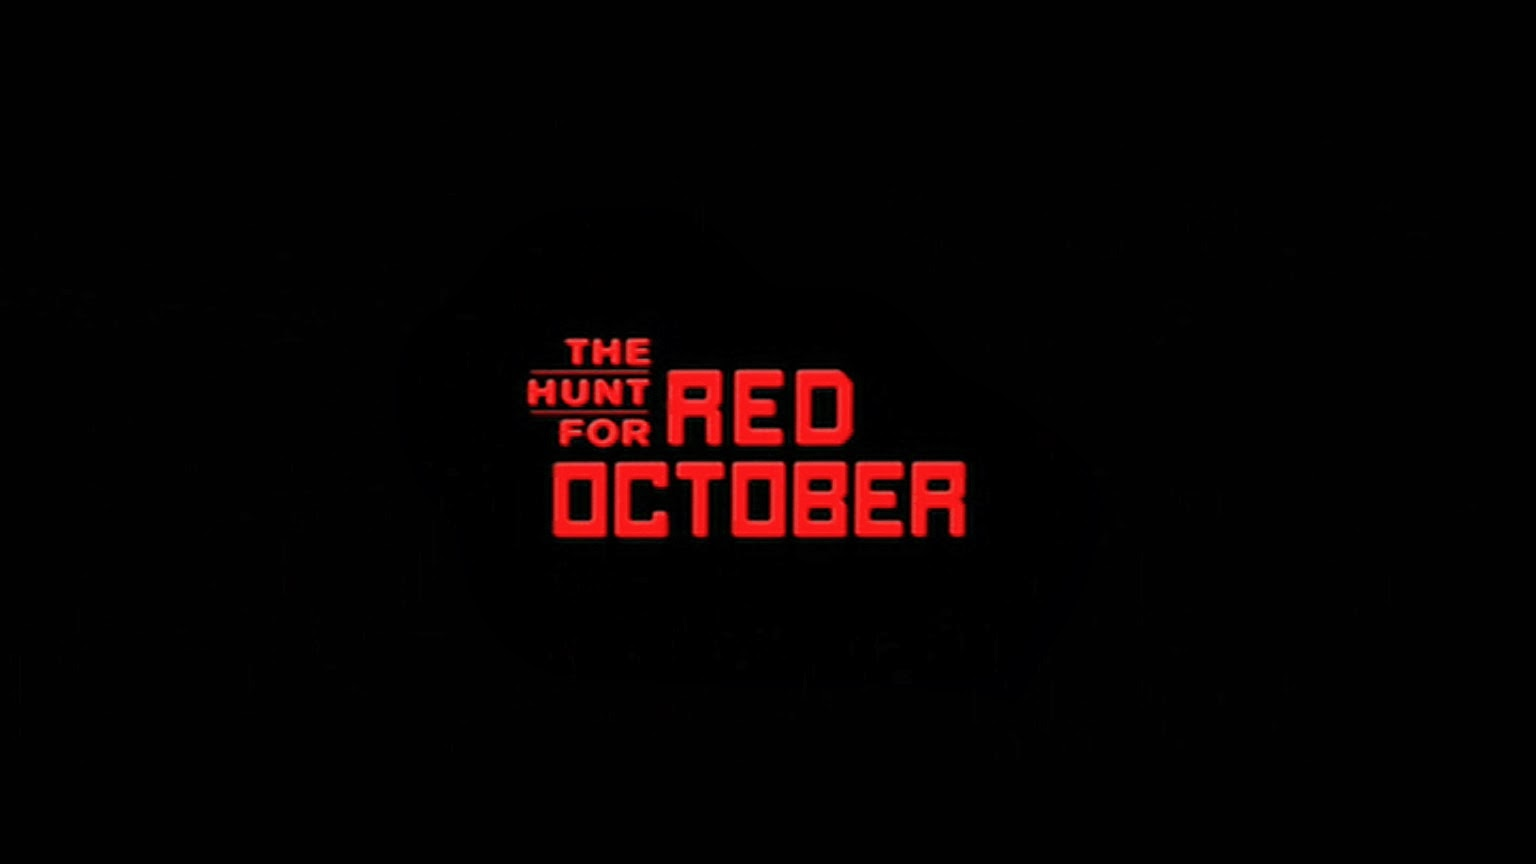 Happyotter: THE HUNT FOR RED OCTOBER (1990) Alec Baldwin Movies